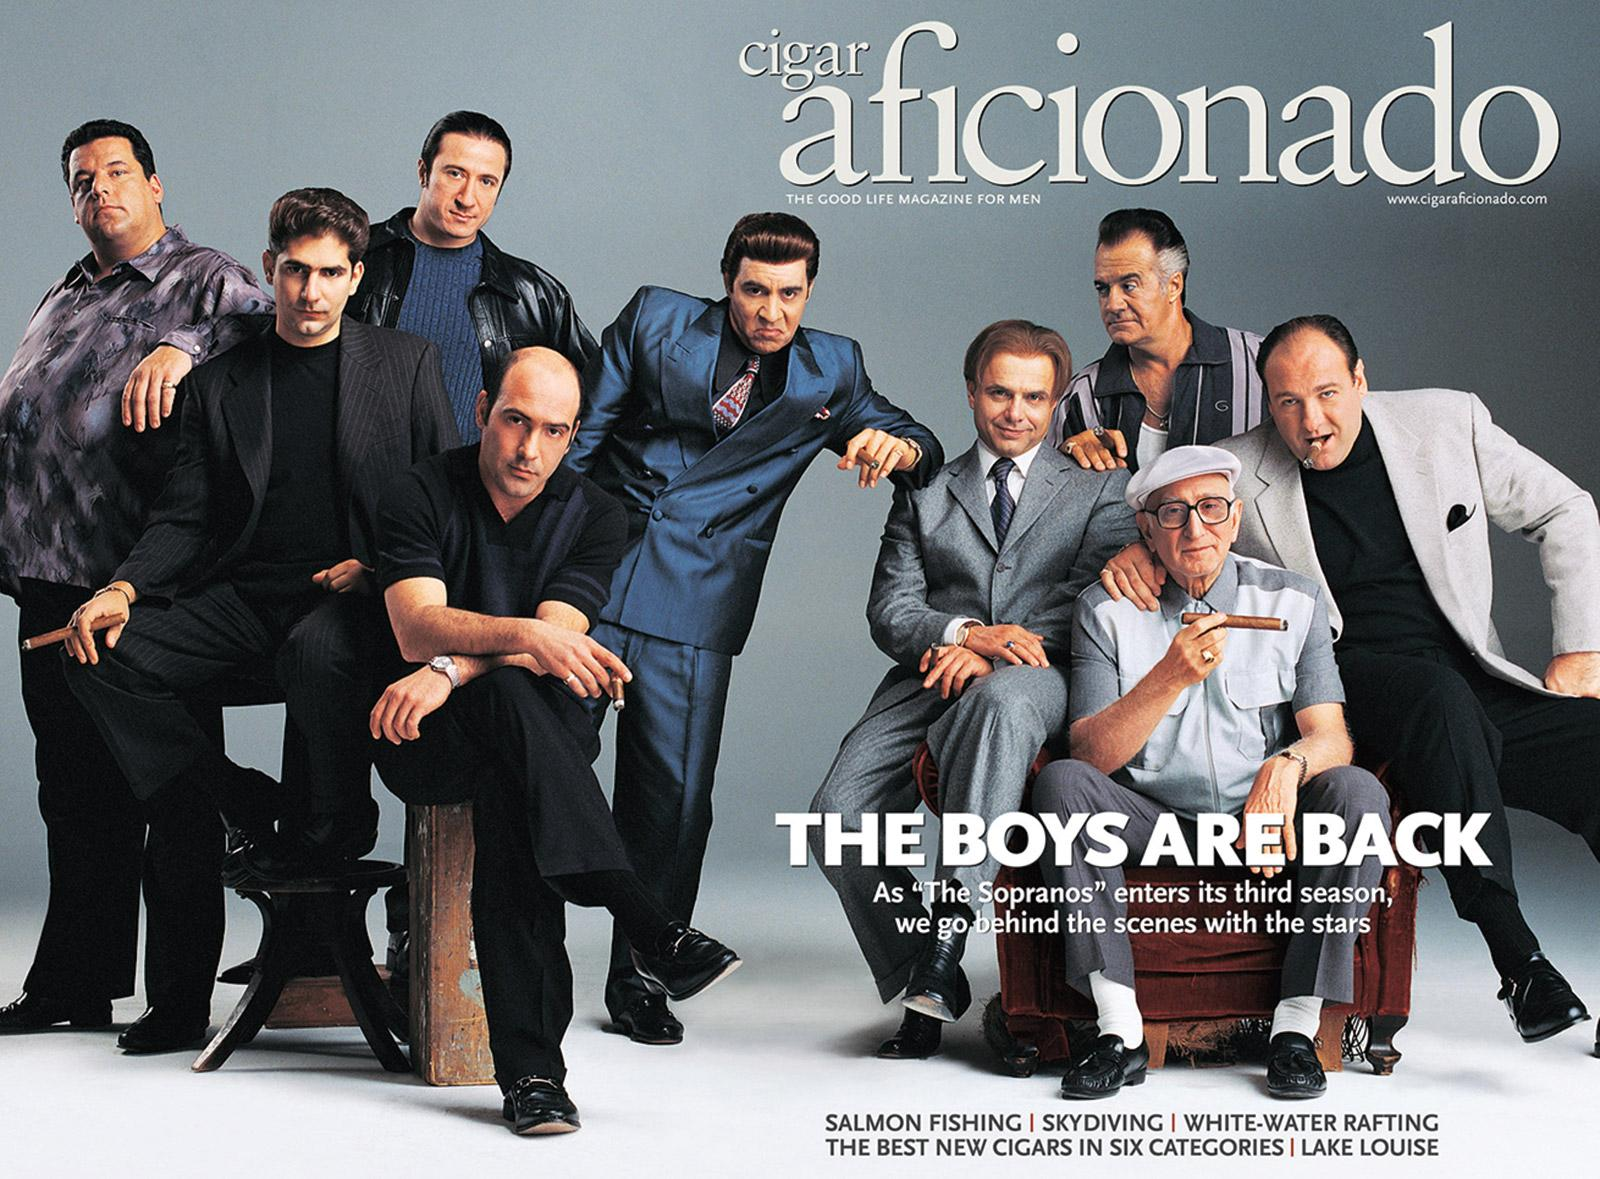 The cast of The Sopranos on the cover of Cigar Aficionado in April 2001.